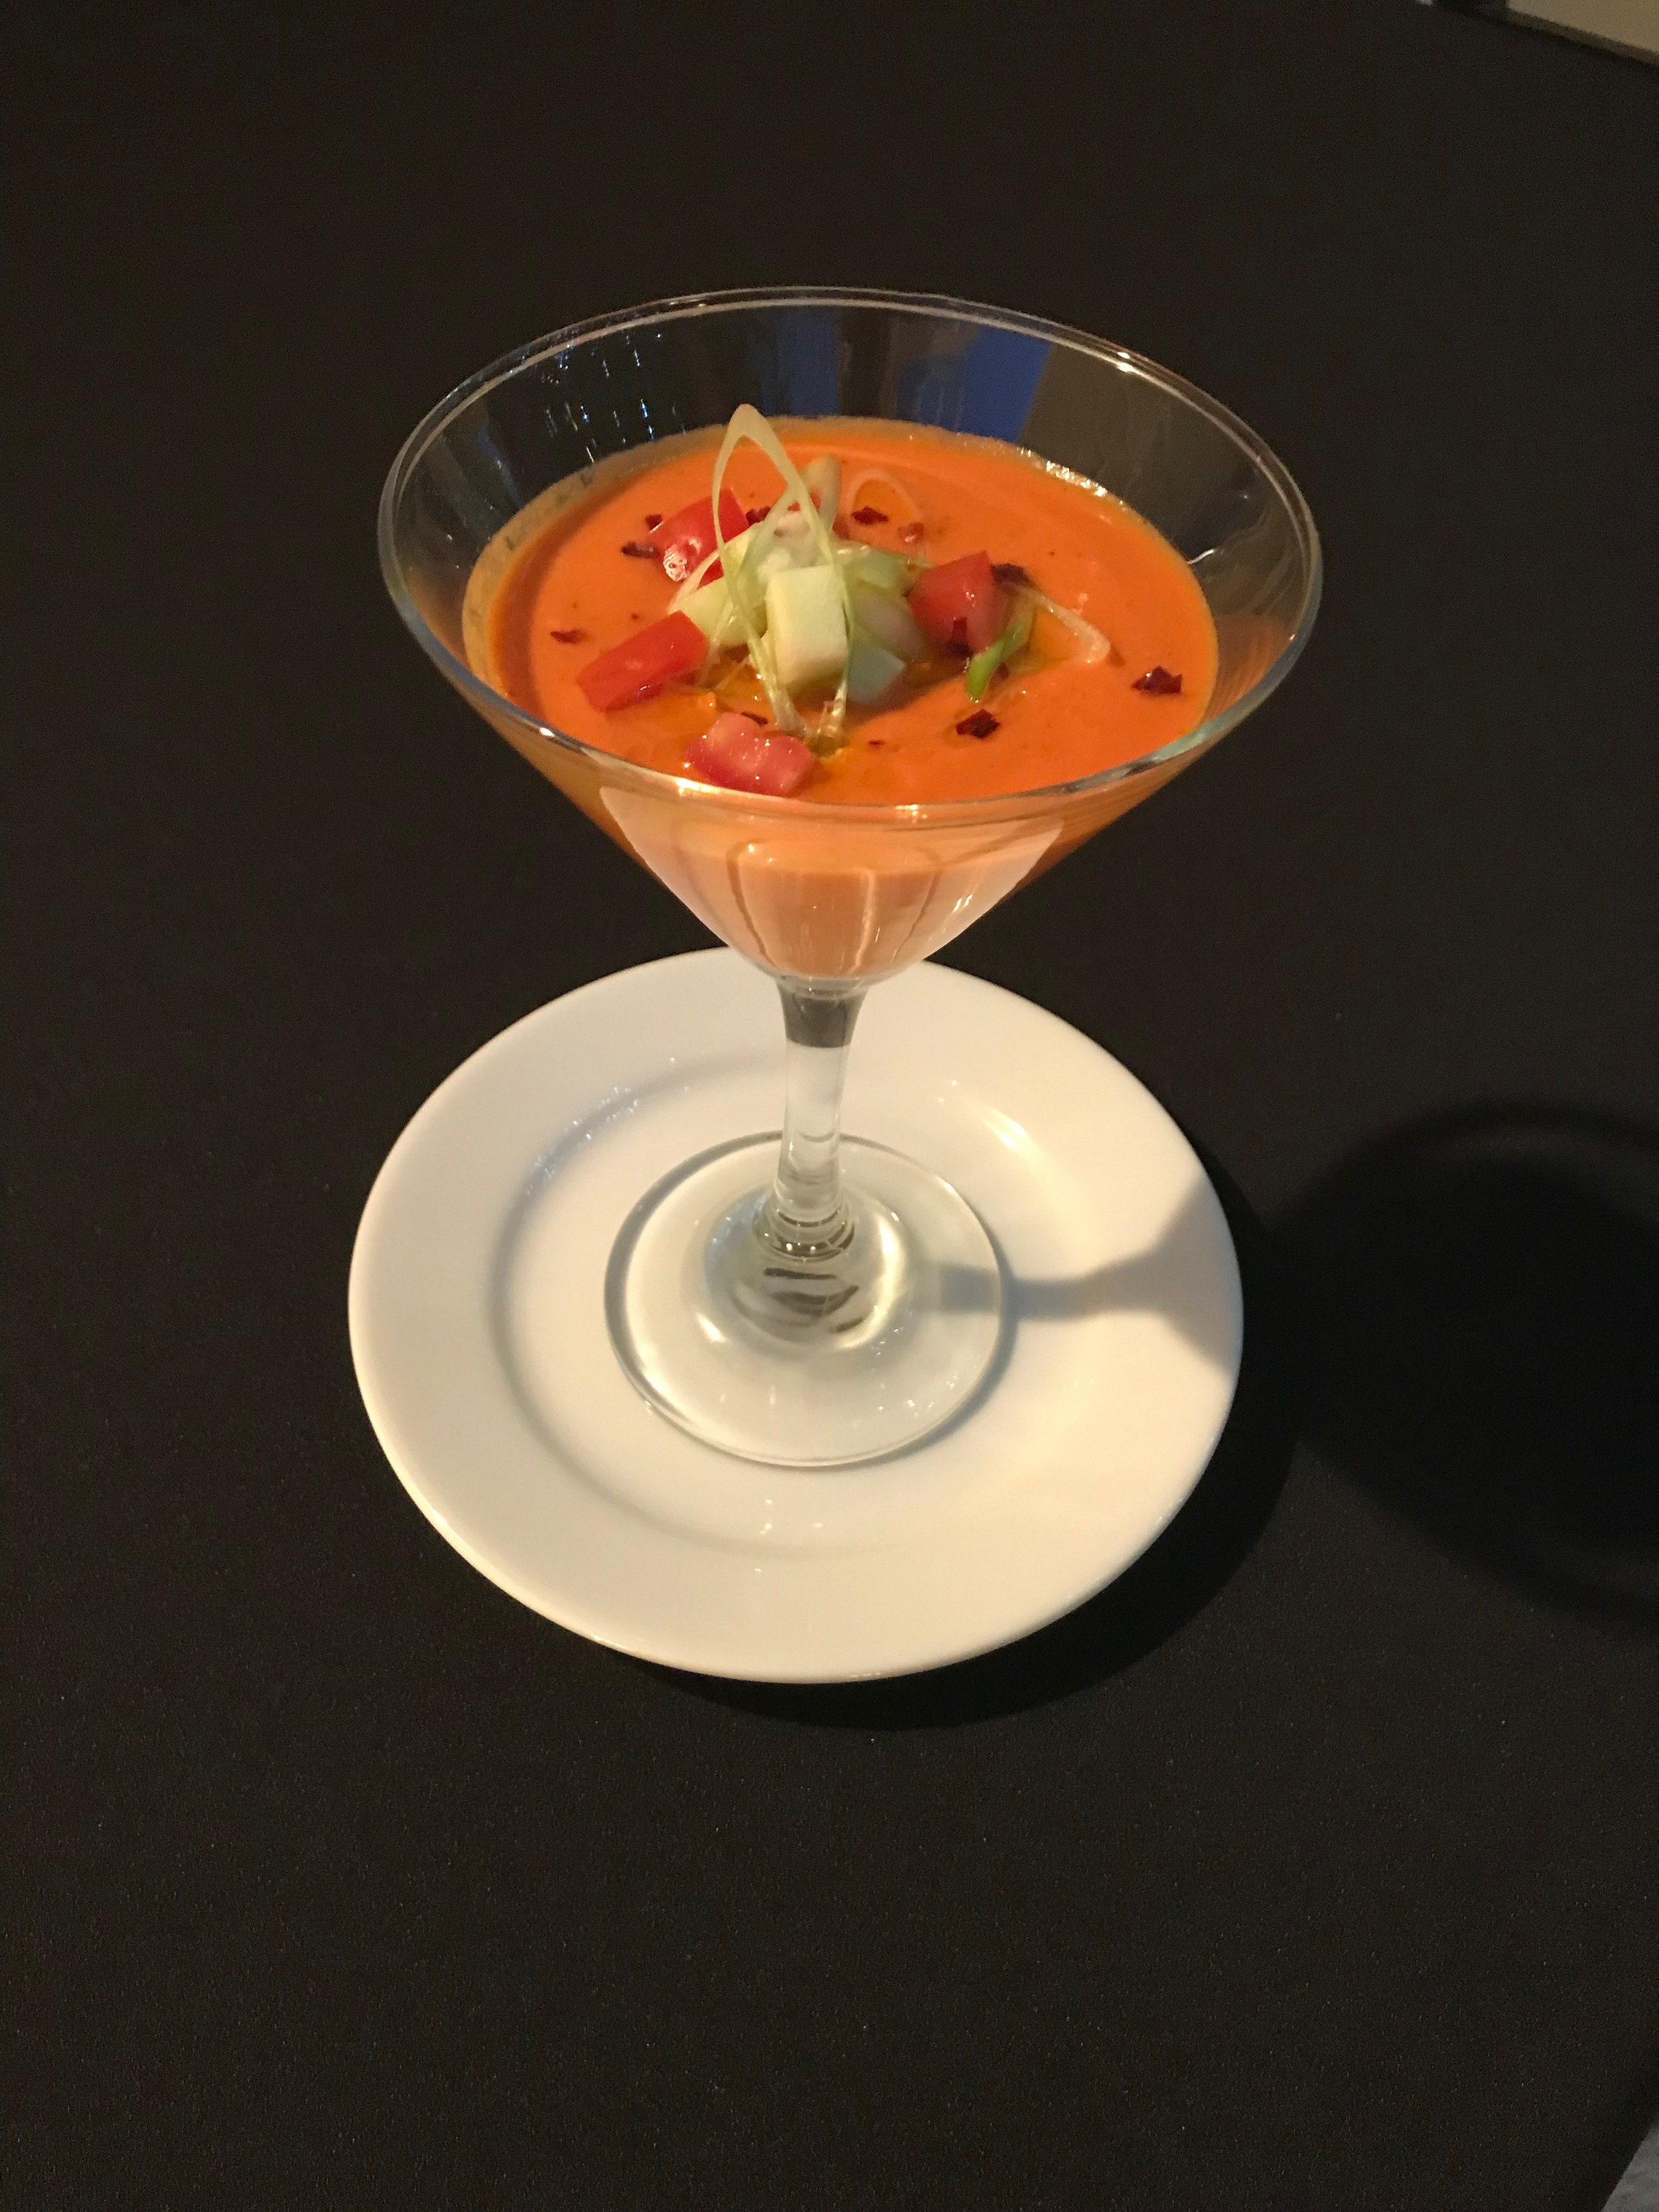 """""""Not Your Traditional"""" Gazpacho - Roasted tomato gazpacho with a drizzle of Spanish olive oil"""